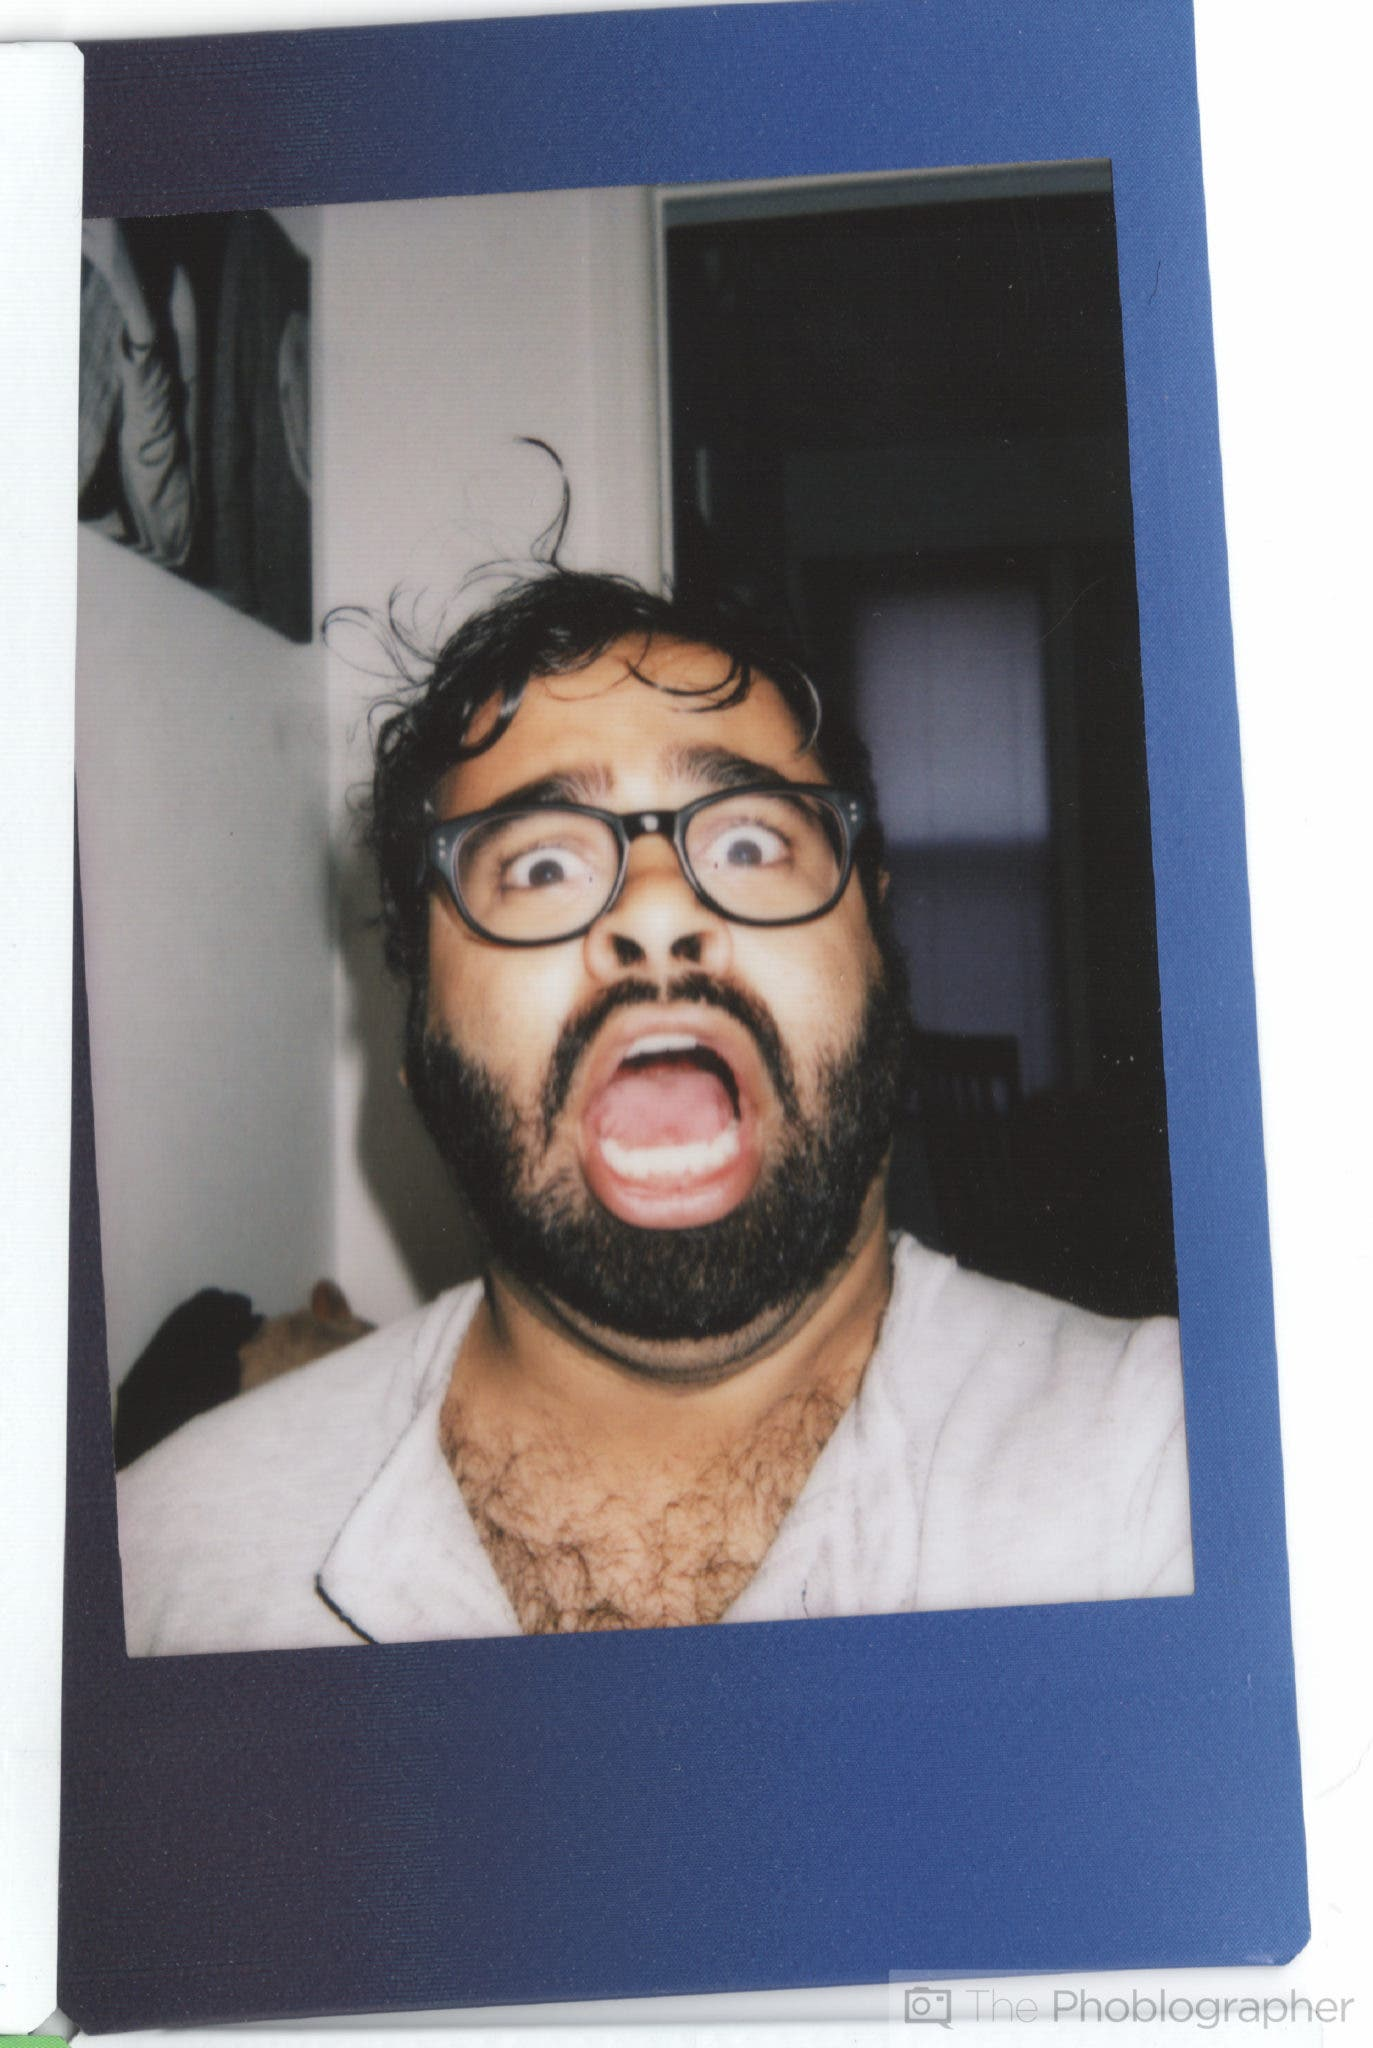 Chris Gampat The Phoblographer Fujifilm Instax Mini 70 scan selfie alone (1 of 1)